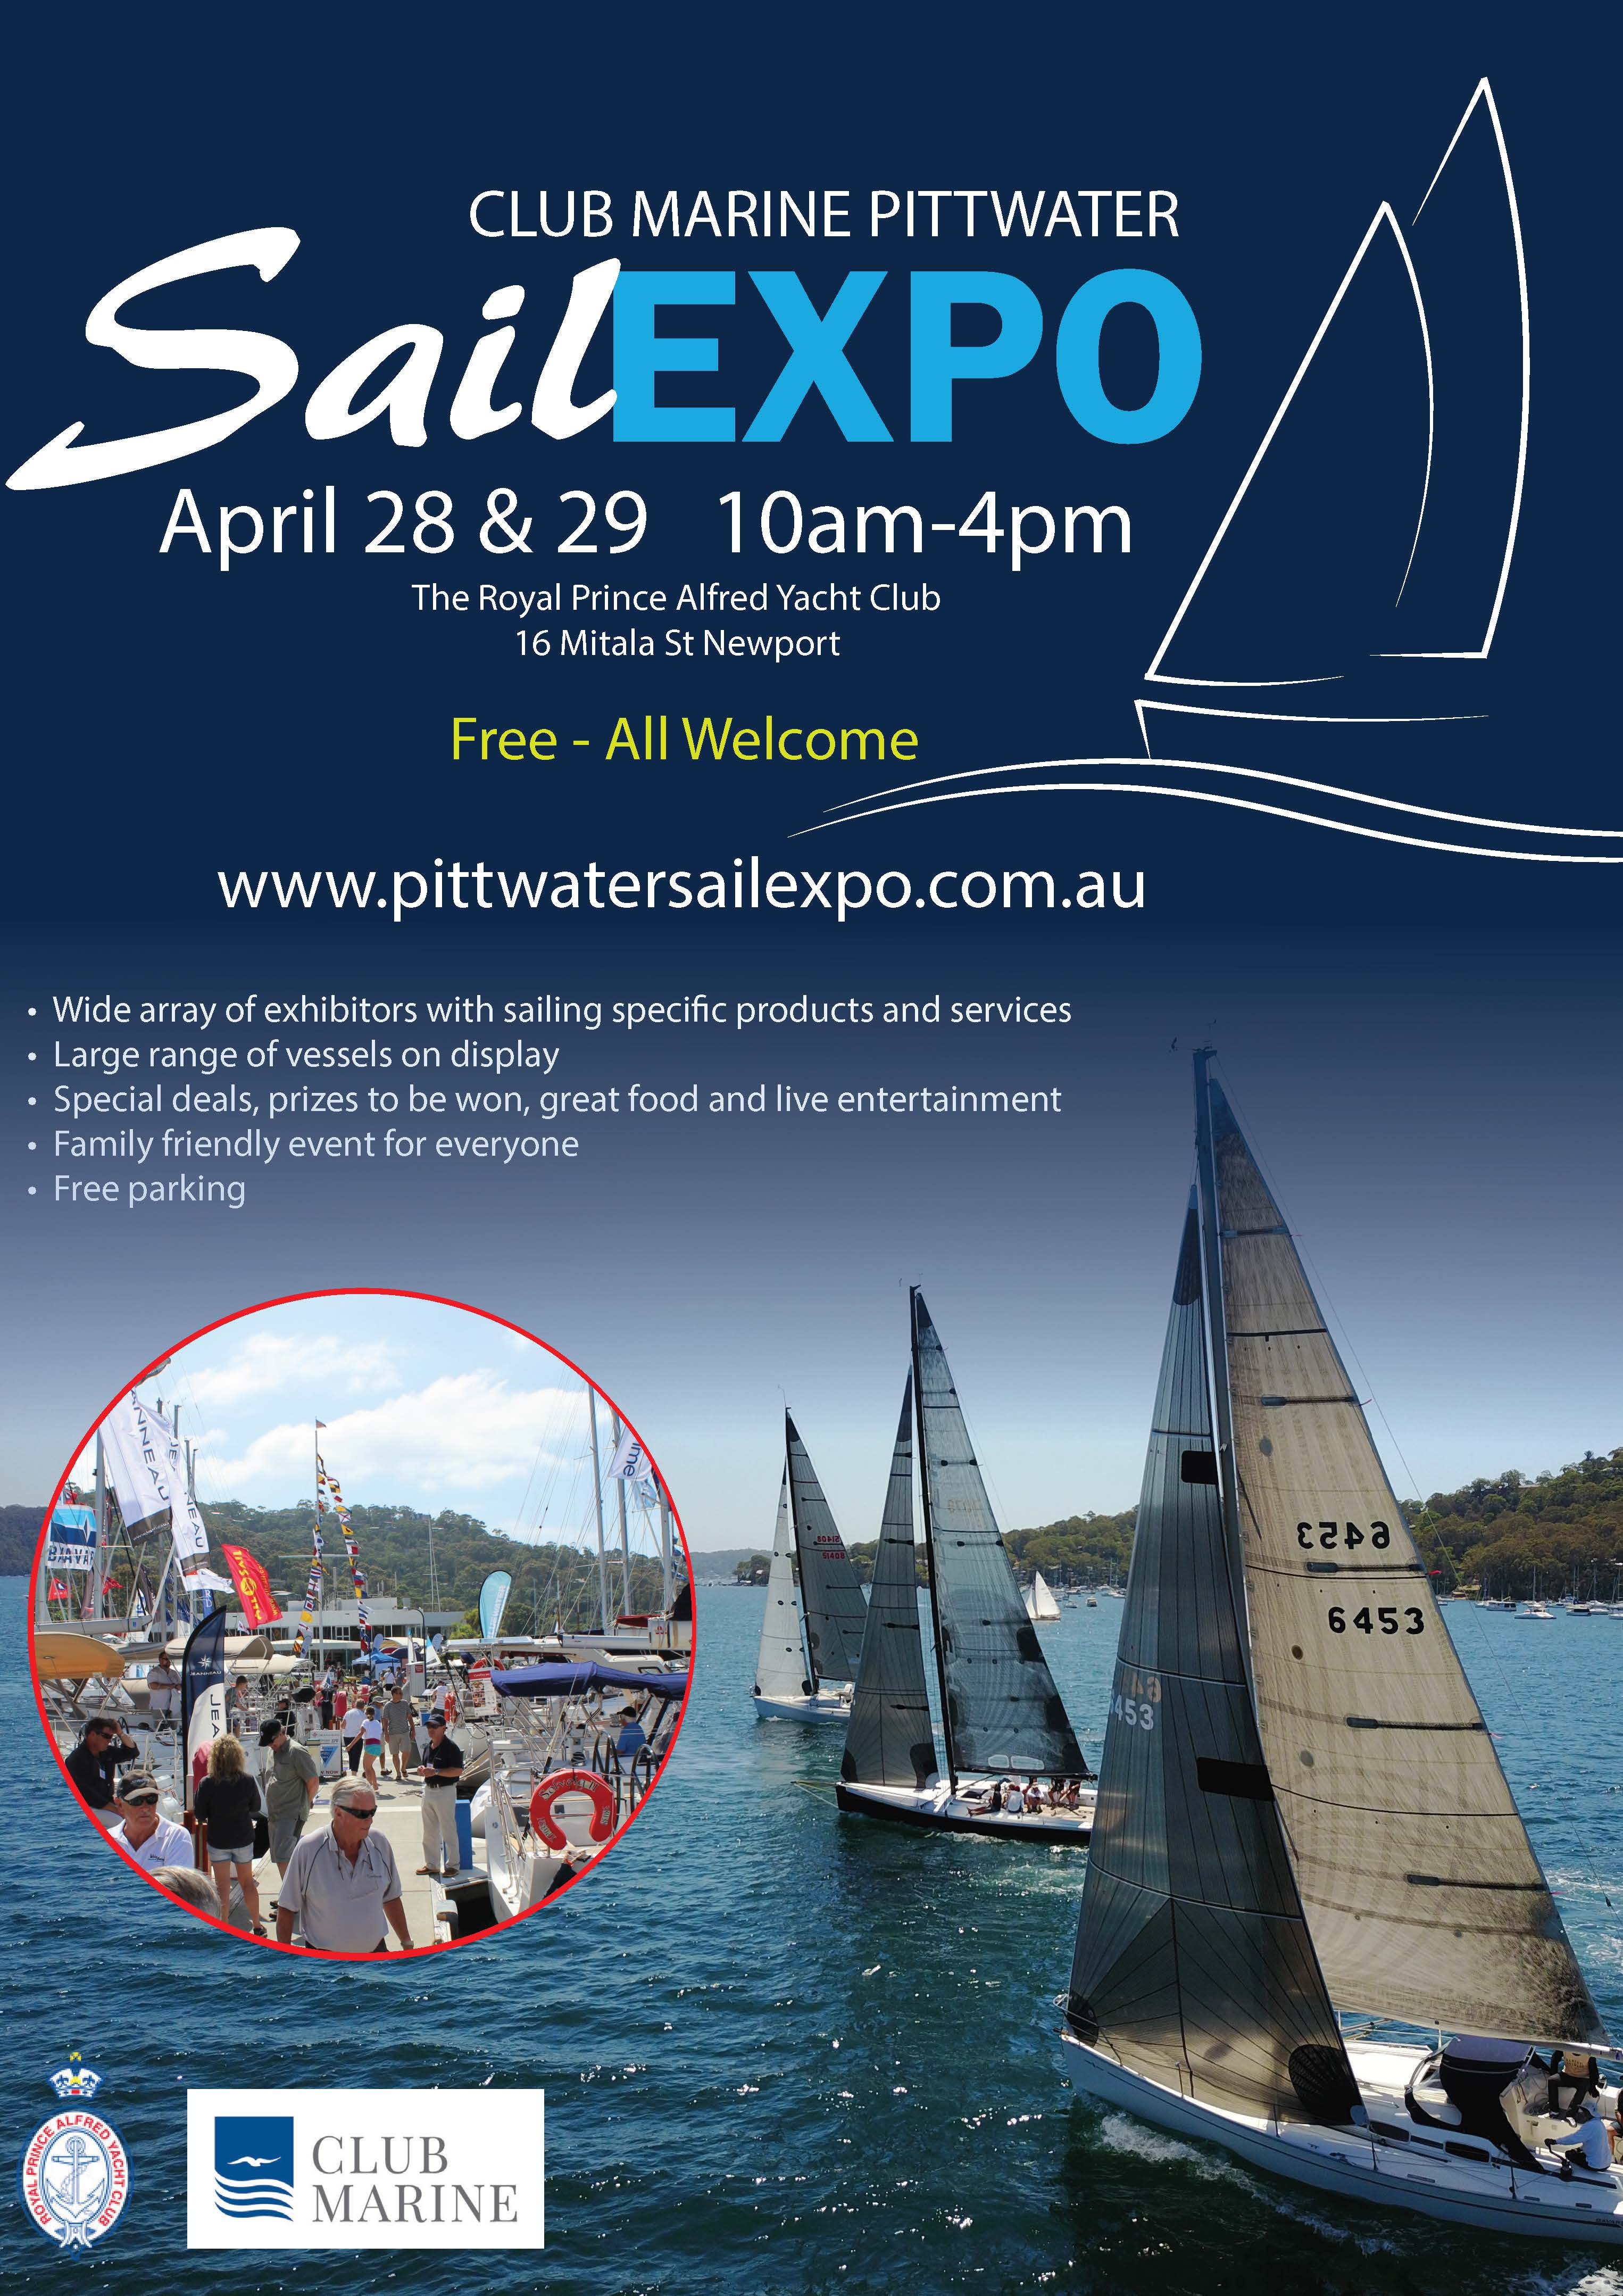 Download the Sail Expo Poster here